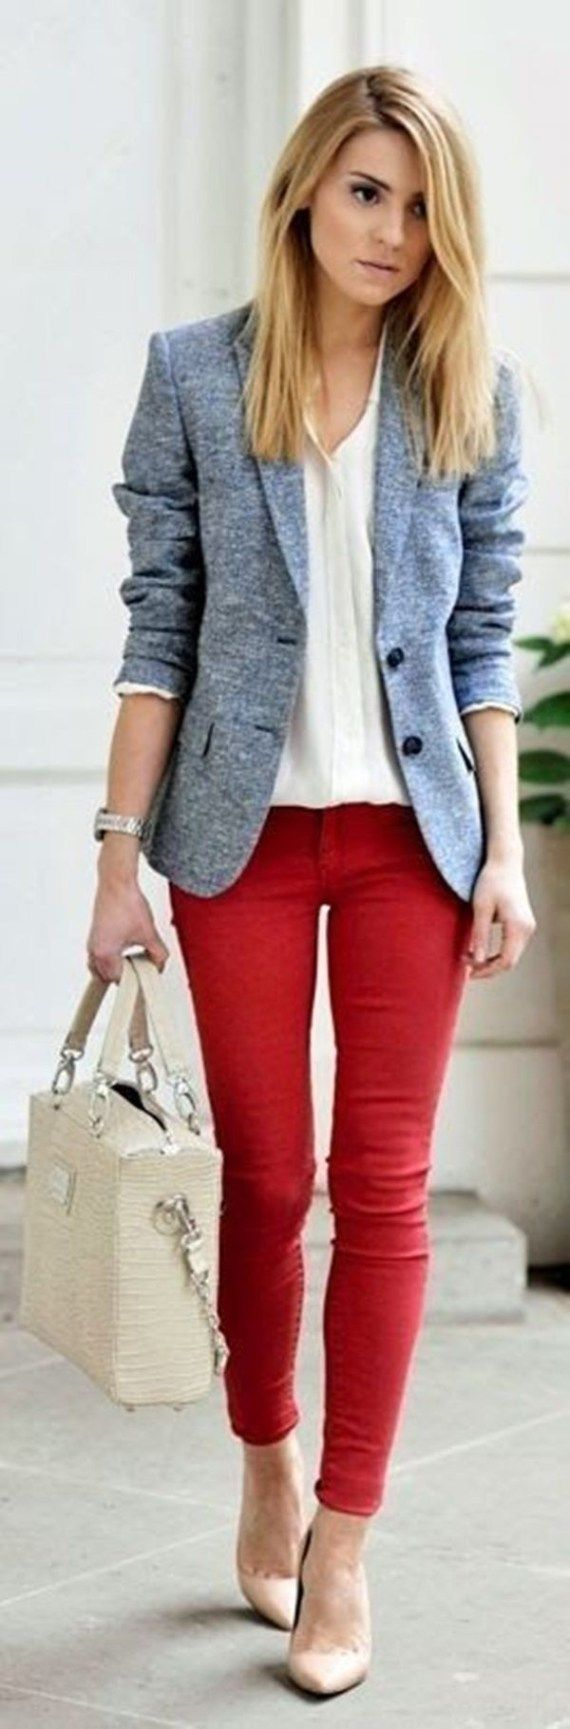 Stylish And Trendy Business Casual Outfit For Women 08